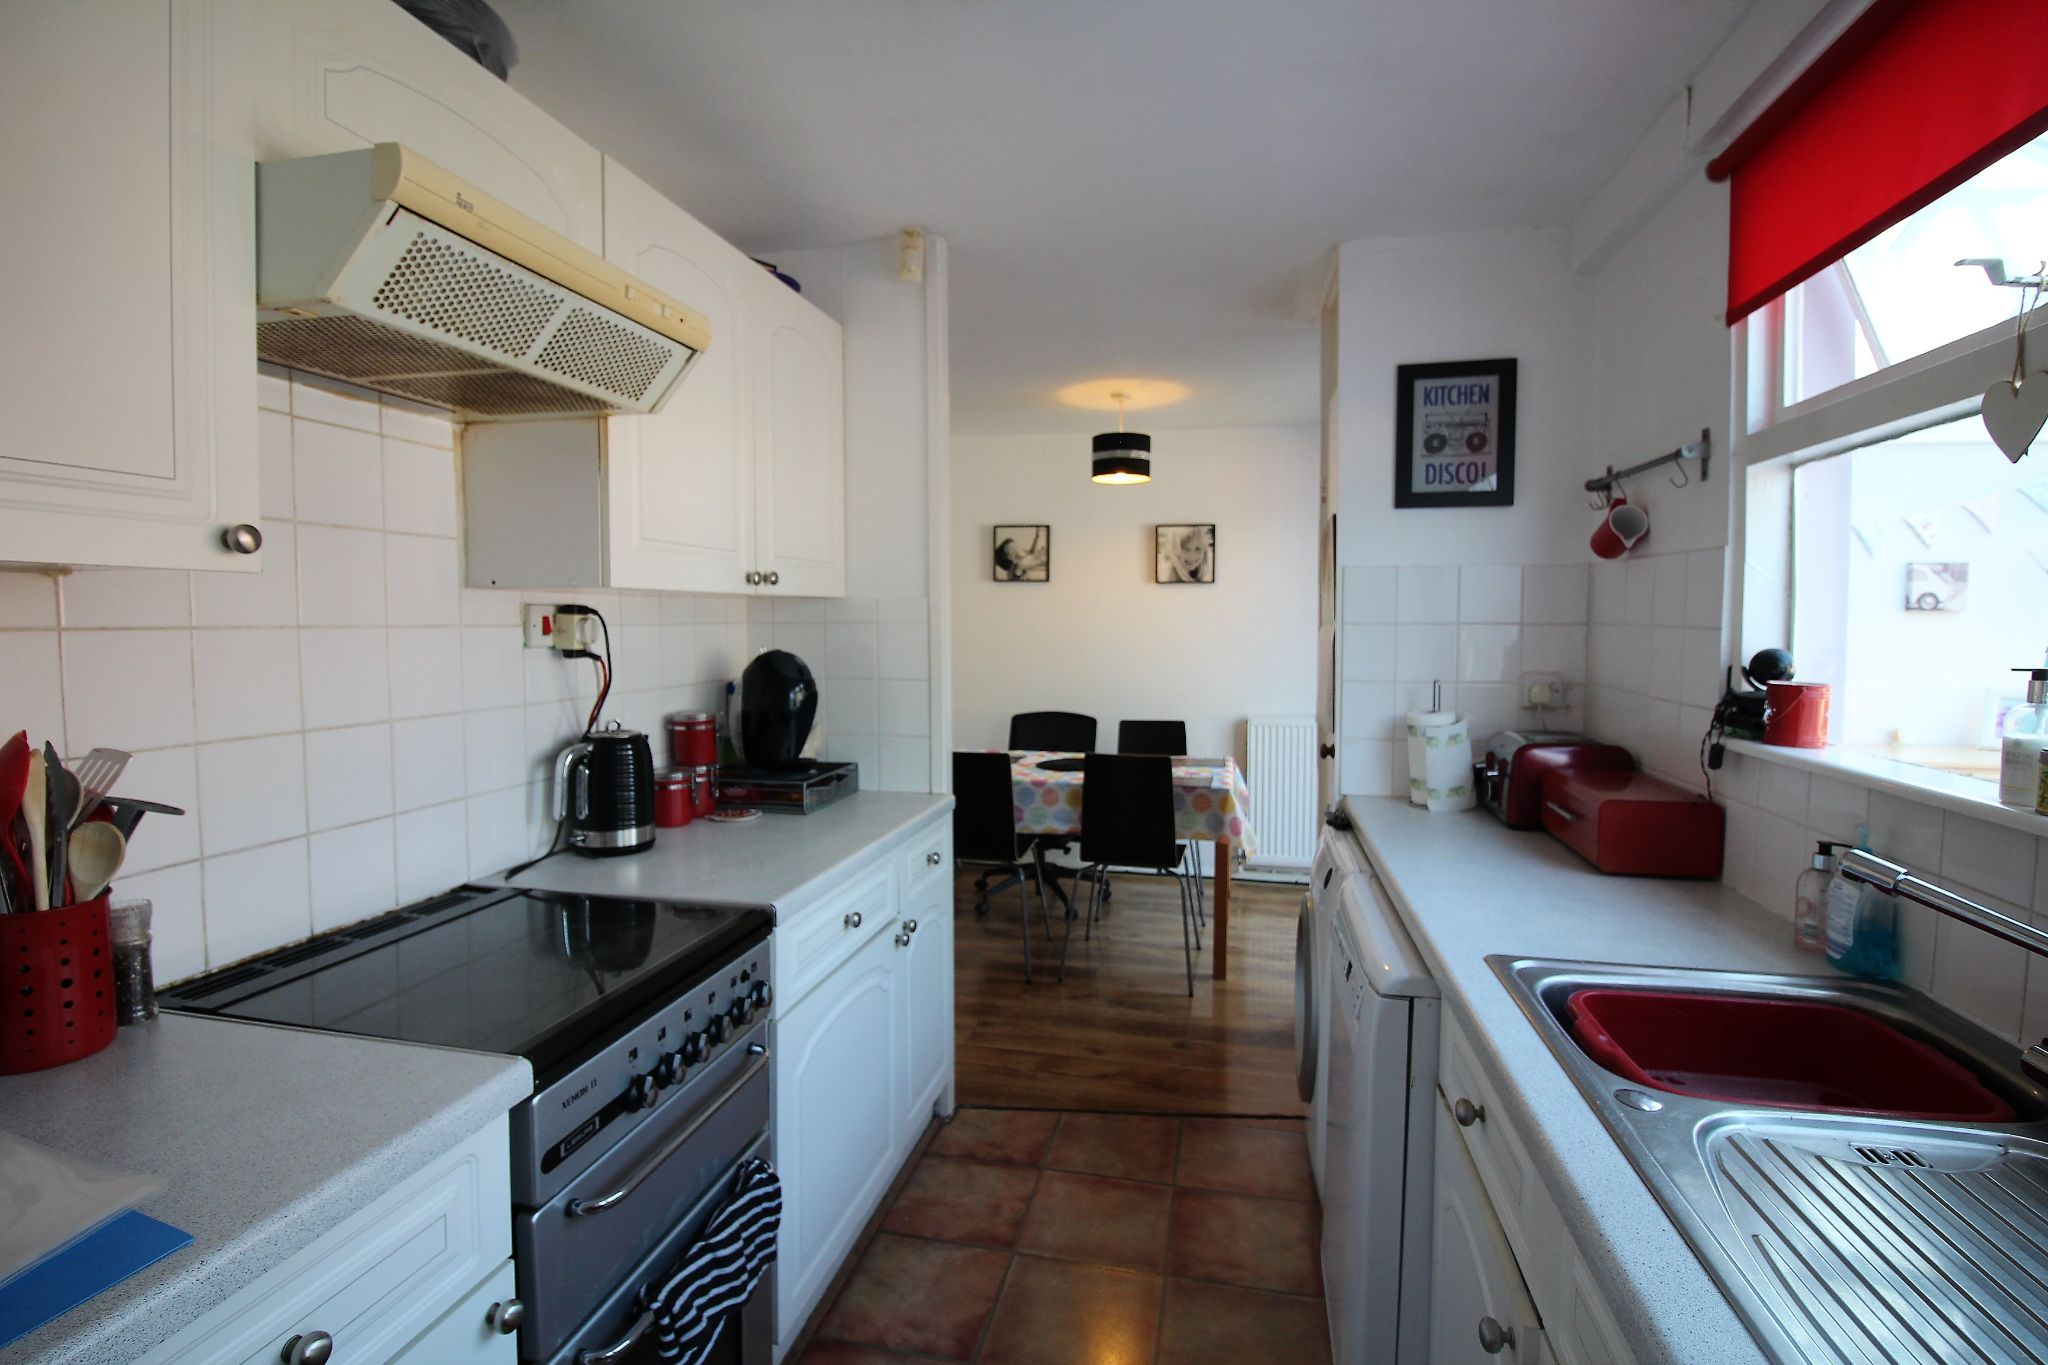 3 bedroom mid terraced house For Sale in Solihull - Photograph 5.